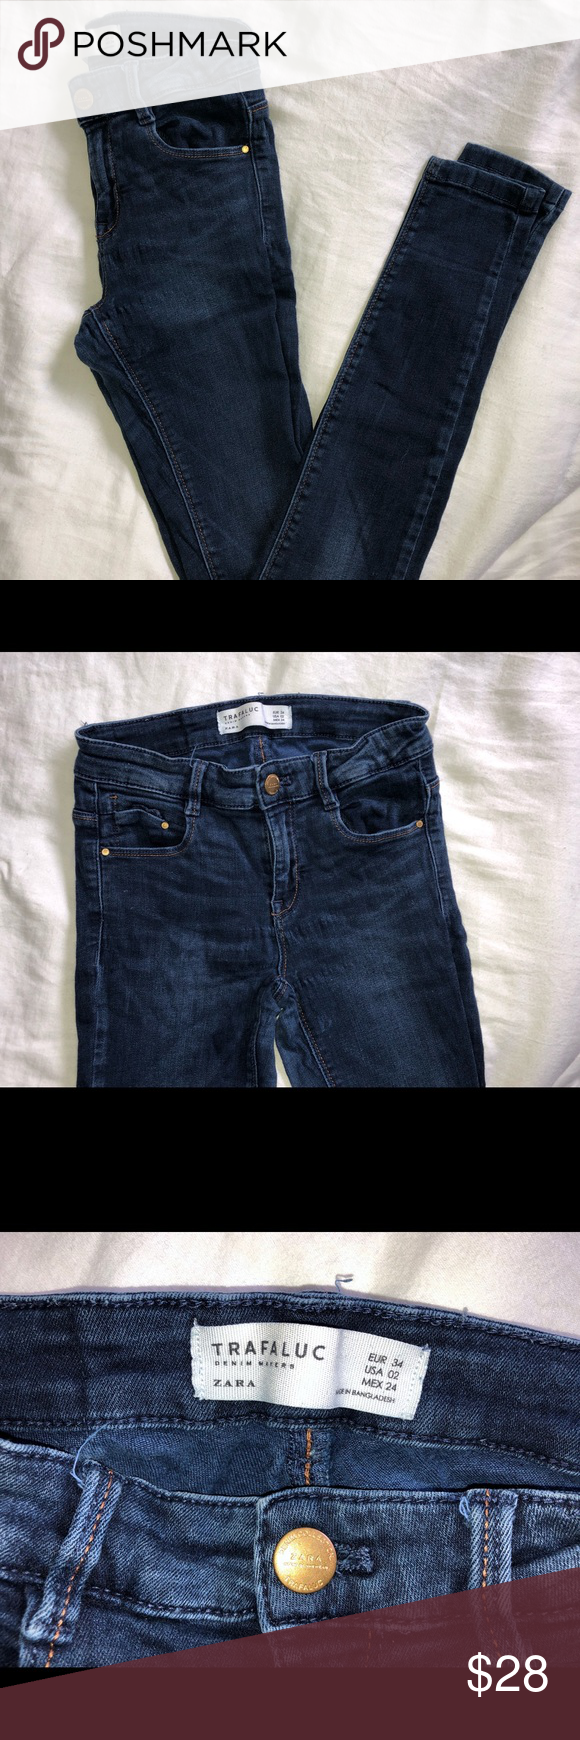 Good Pics Zara Trafaluc Skinny JeggingJeans Zara TRF Trafaluc skinny jeggingjean Stret Tips I really like Jeans  And even more I love to sew my own personal Jeans Next Je...